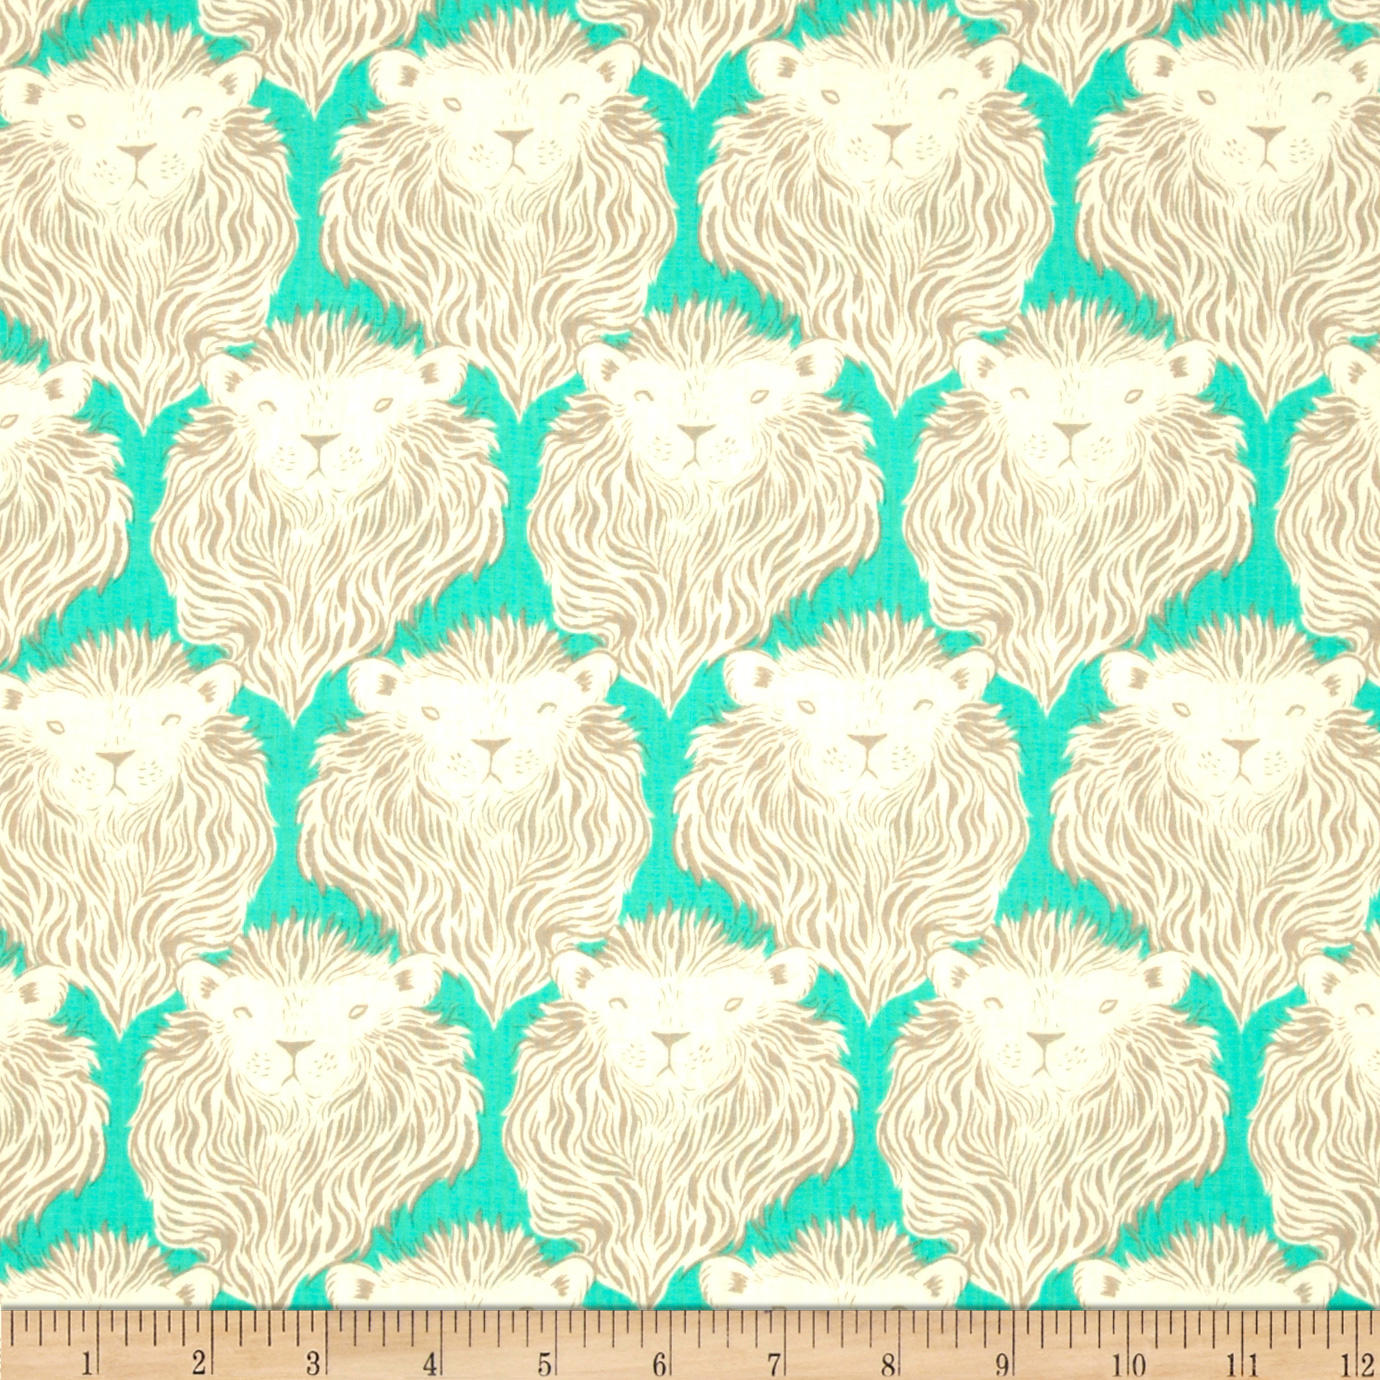 Cotton & Steel August Lion Teal Fabric By The Yard by Cotton & Steel in USA